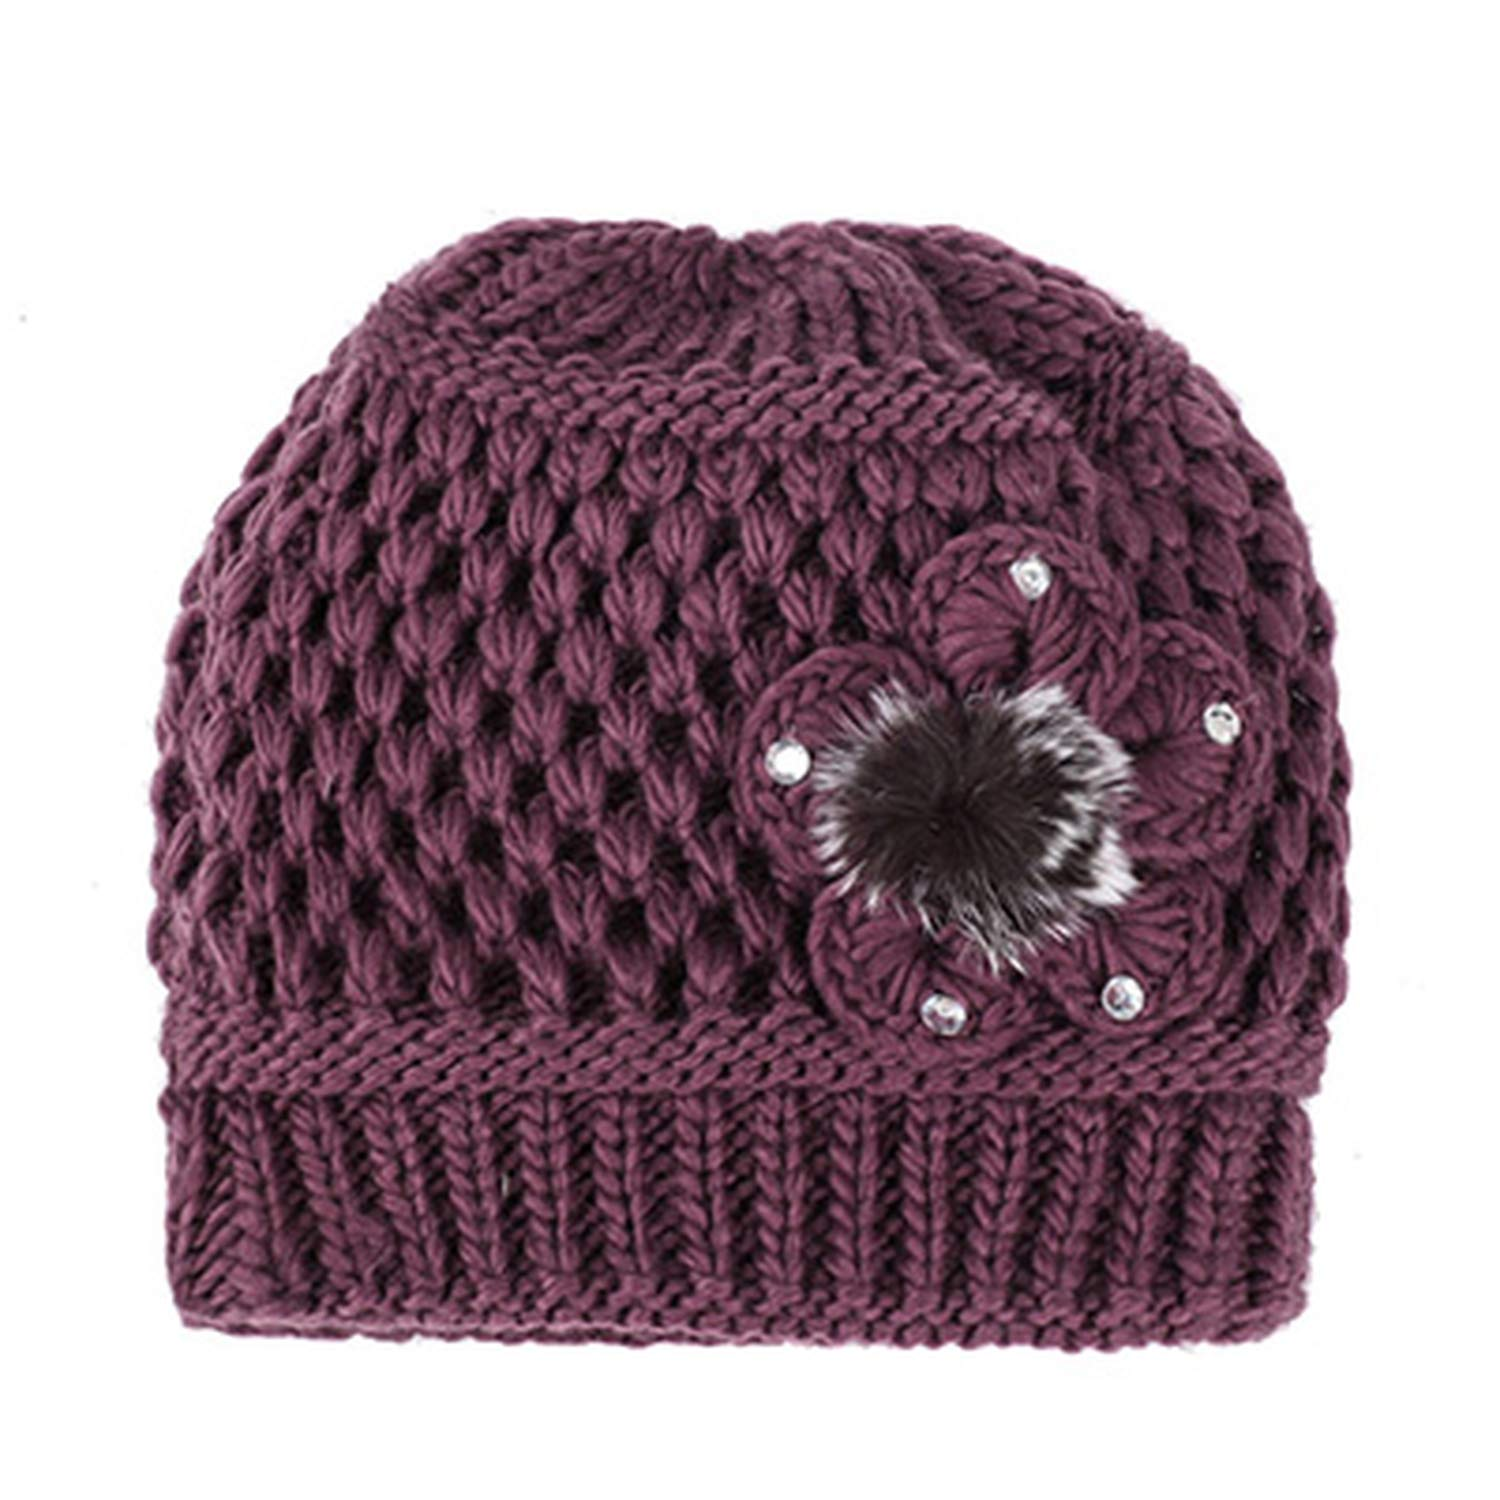 Warm Winter Hats for Women 2018 Knitted Flower Beanies Female Caps Braided Cap Bonnet Femme Mother Hat